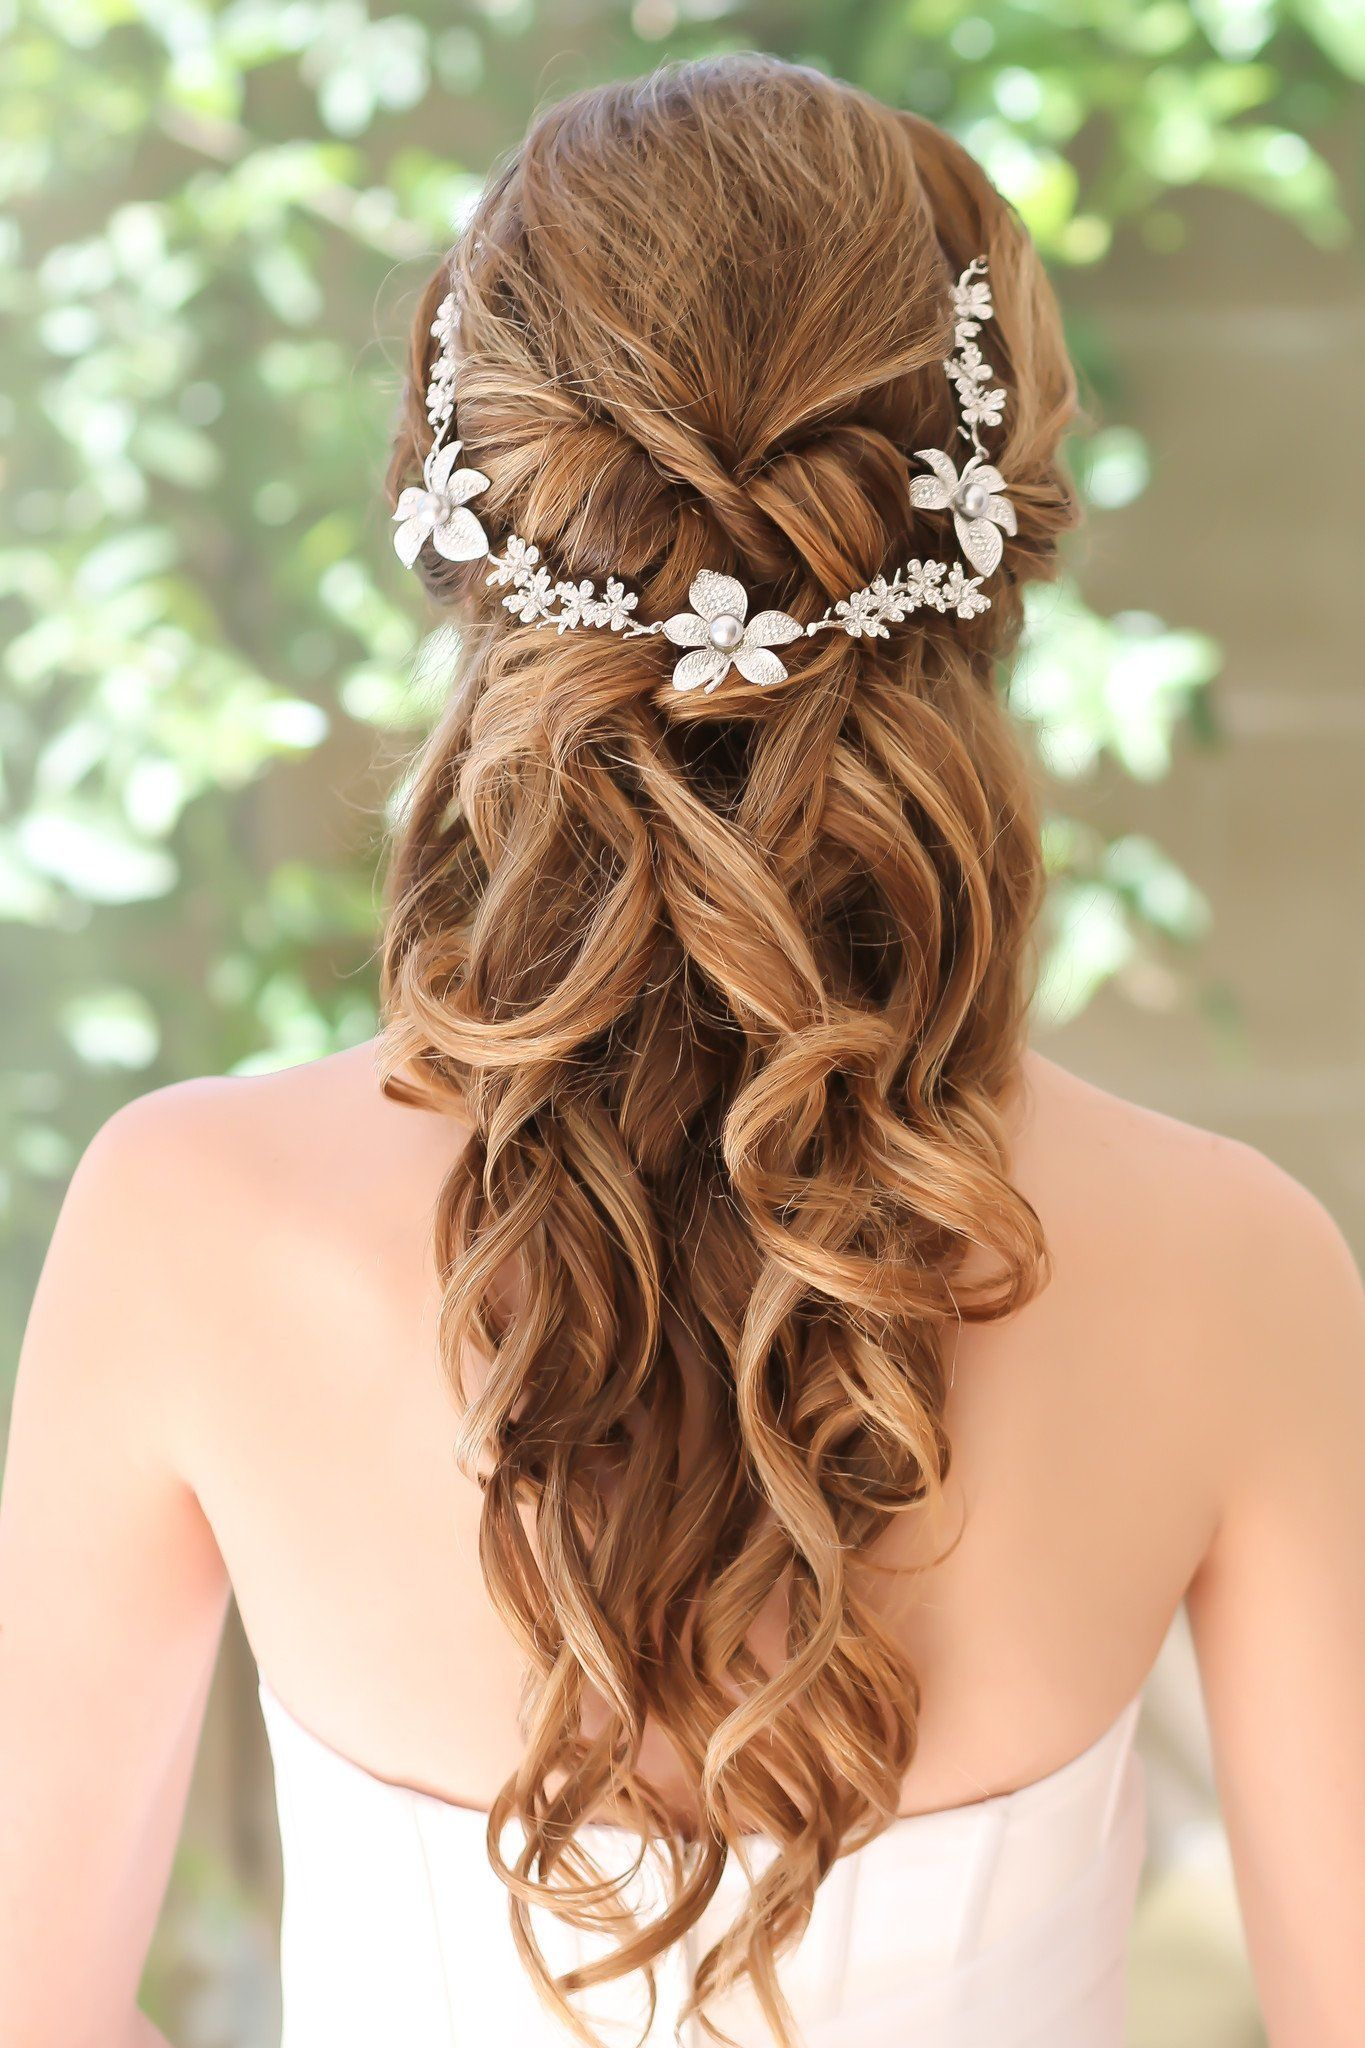 Andree headpiece weddinghairstyles wedding hairstyles pinterest